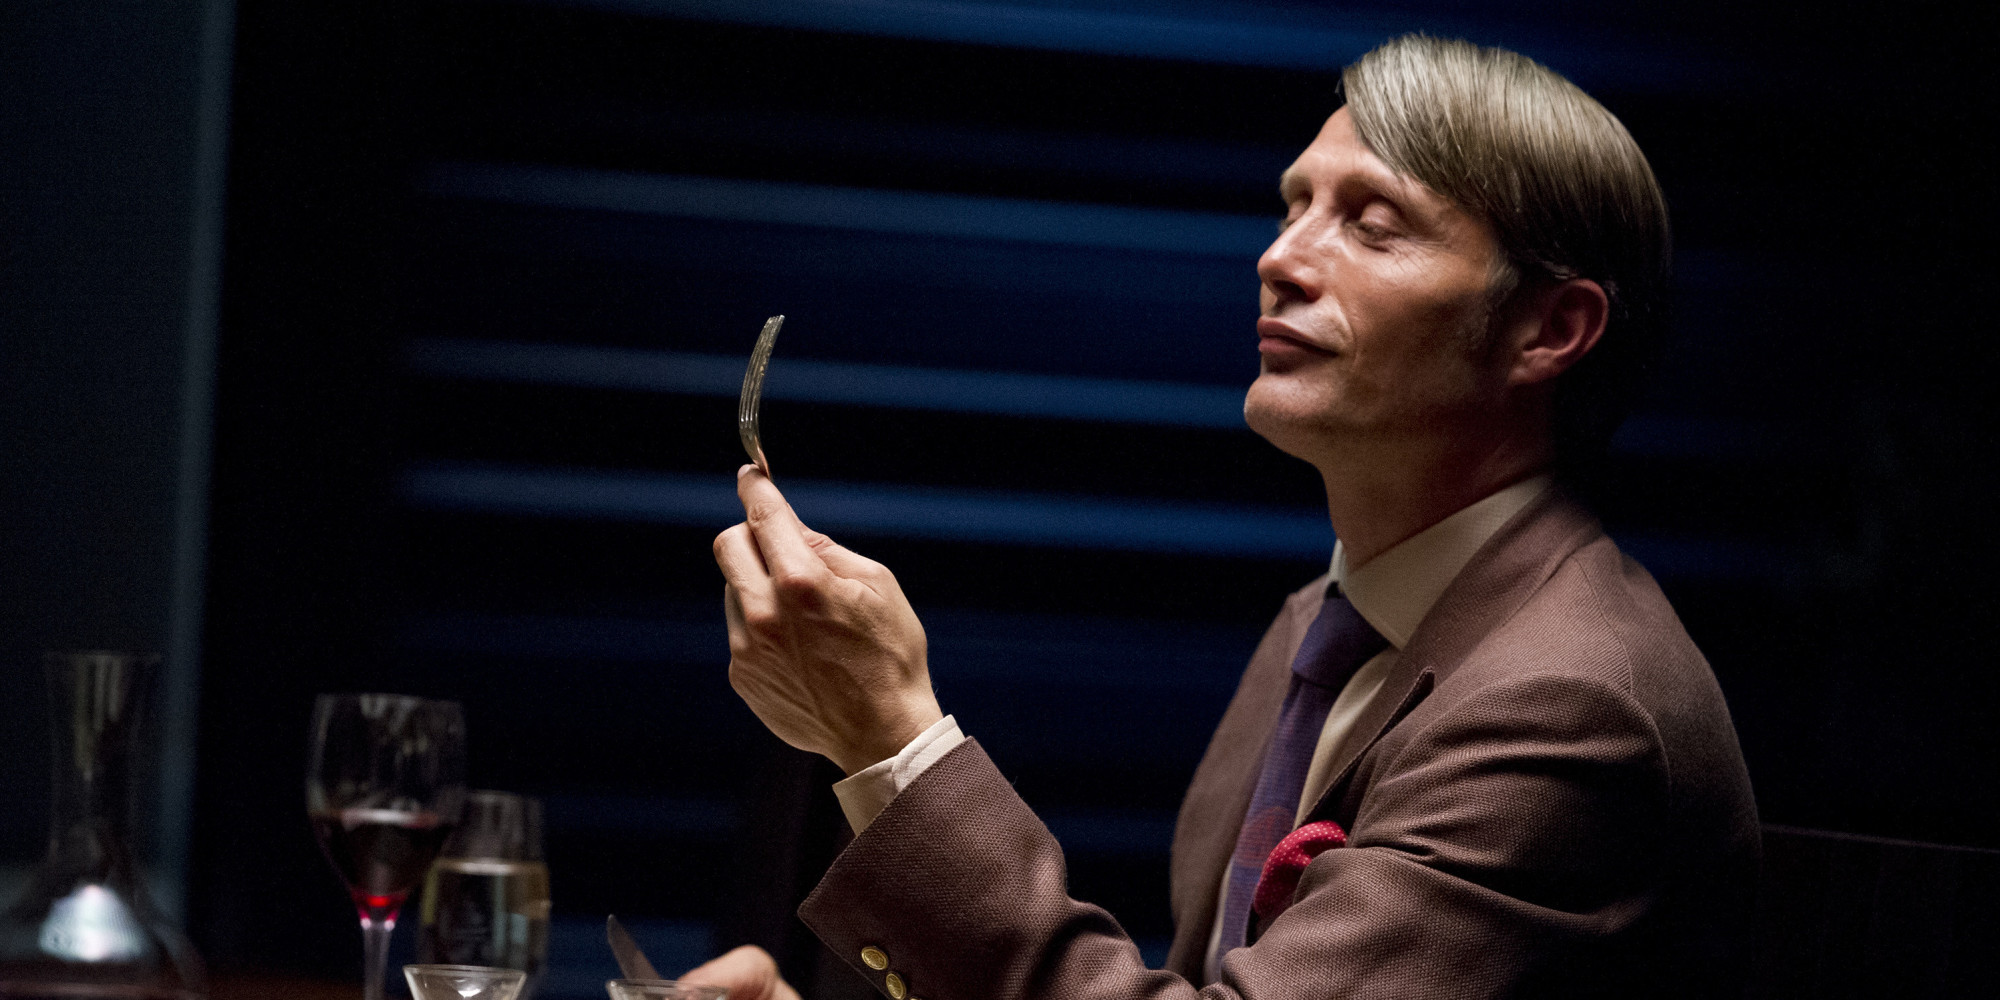 The Mads Mikkelsen movies list also includes his acclaimed performance on Hannibal.